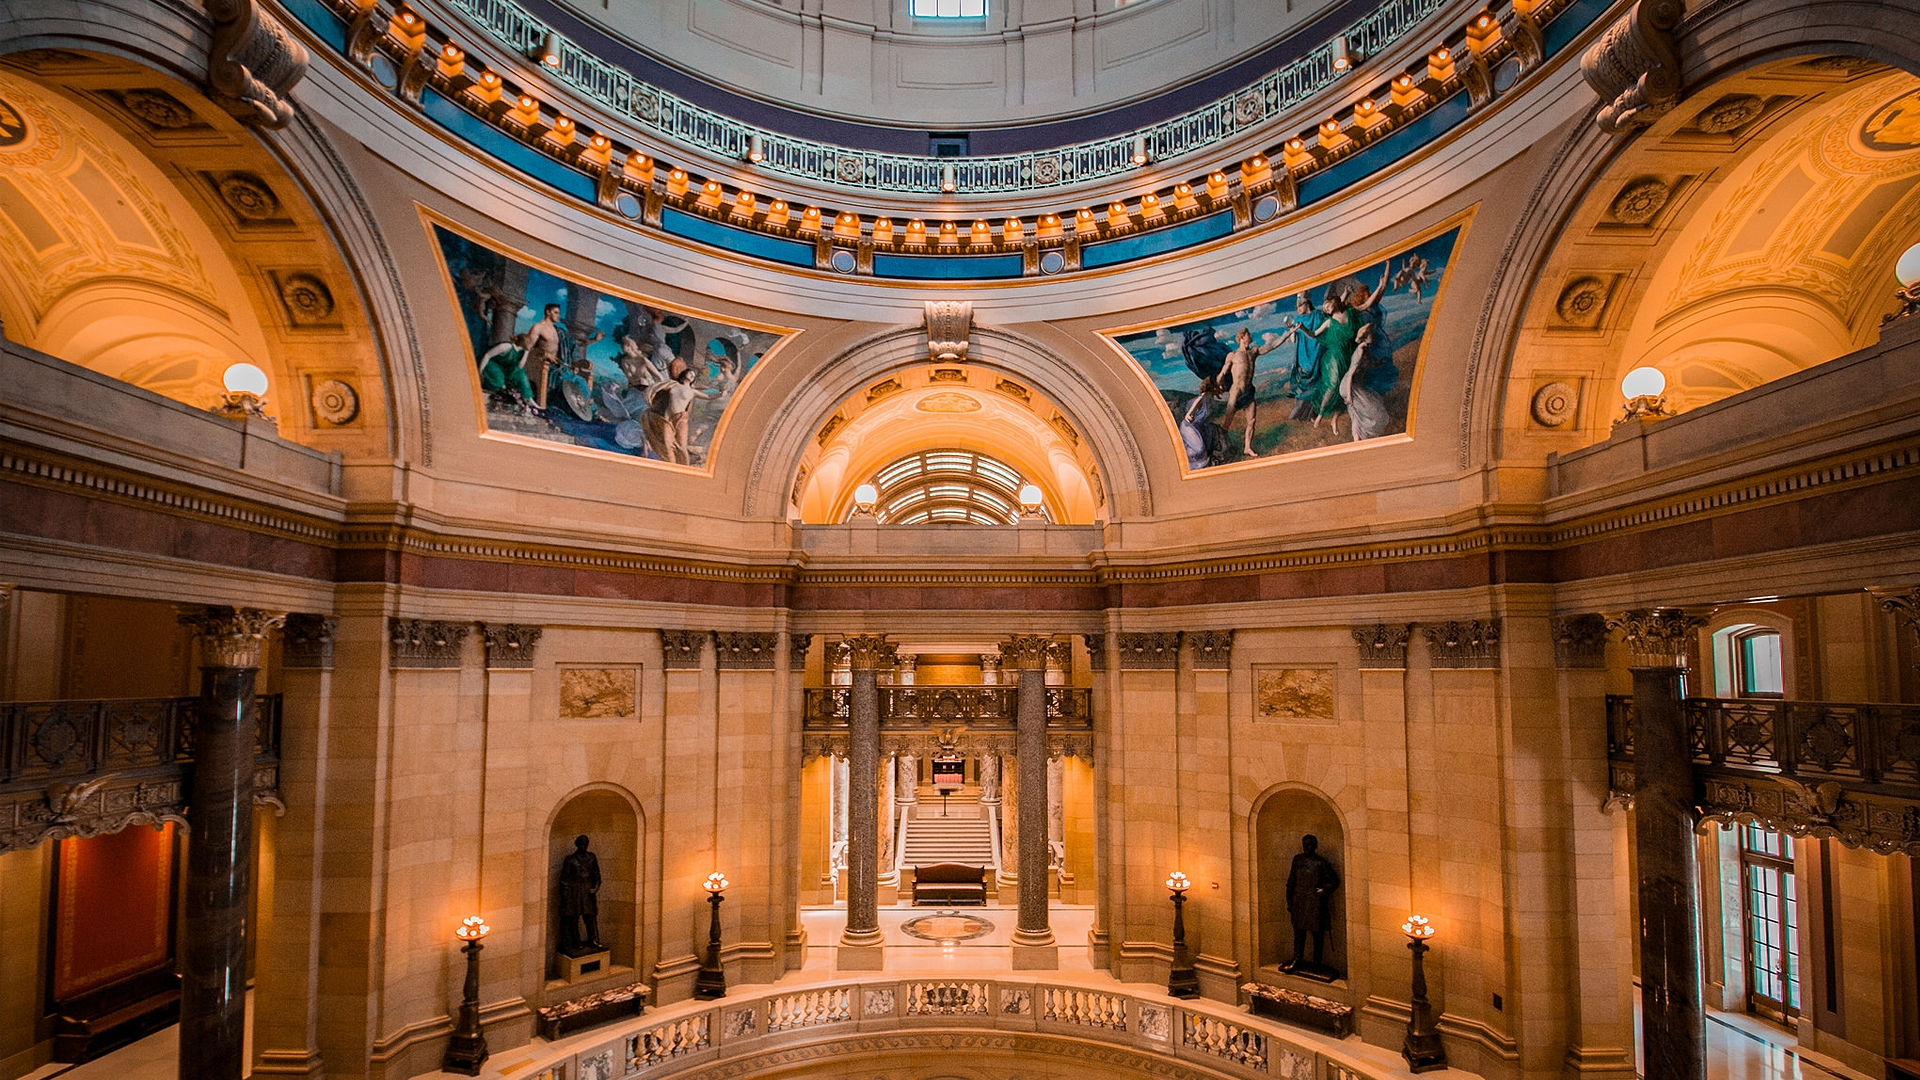 Consider taking a tour while you're in town, such as the recently restored and renovated Minnesota State Capitol